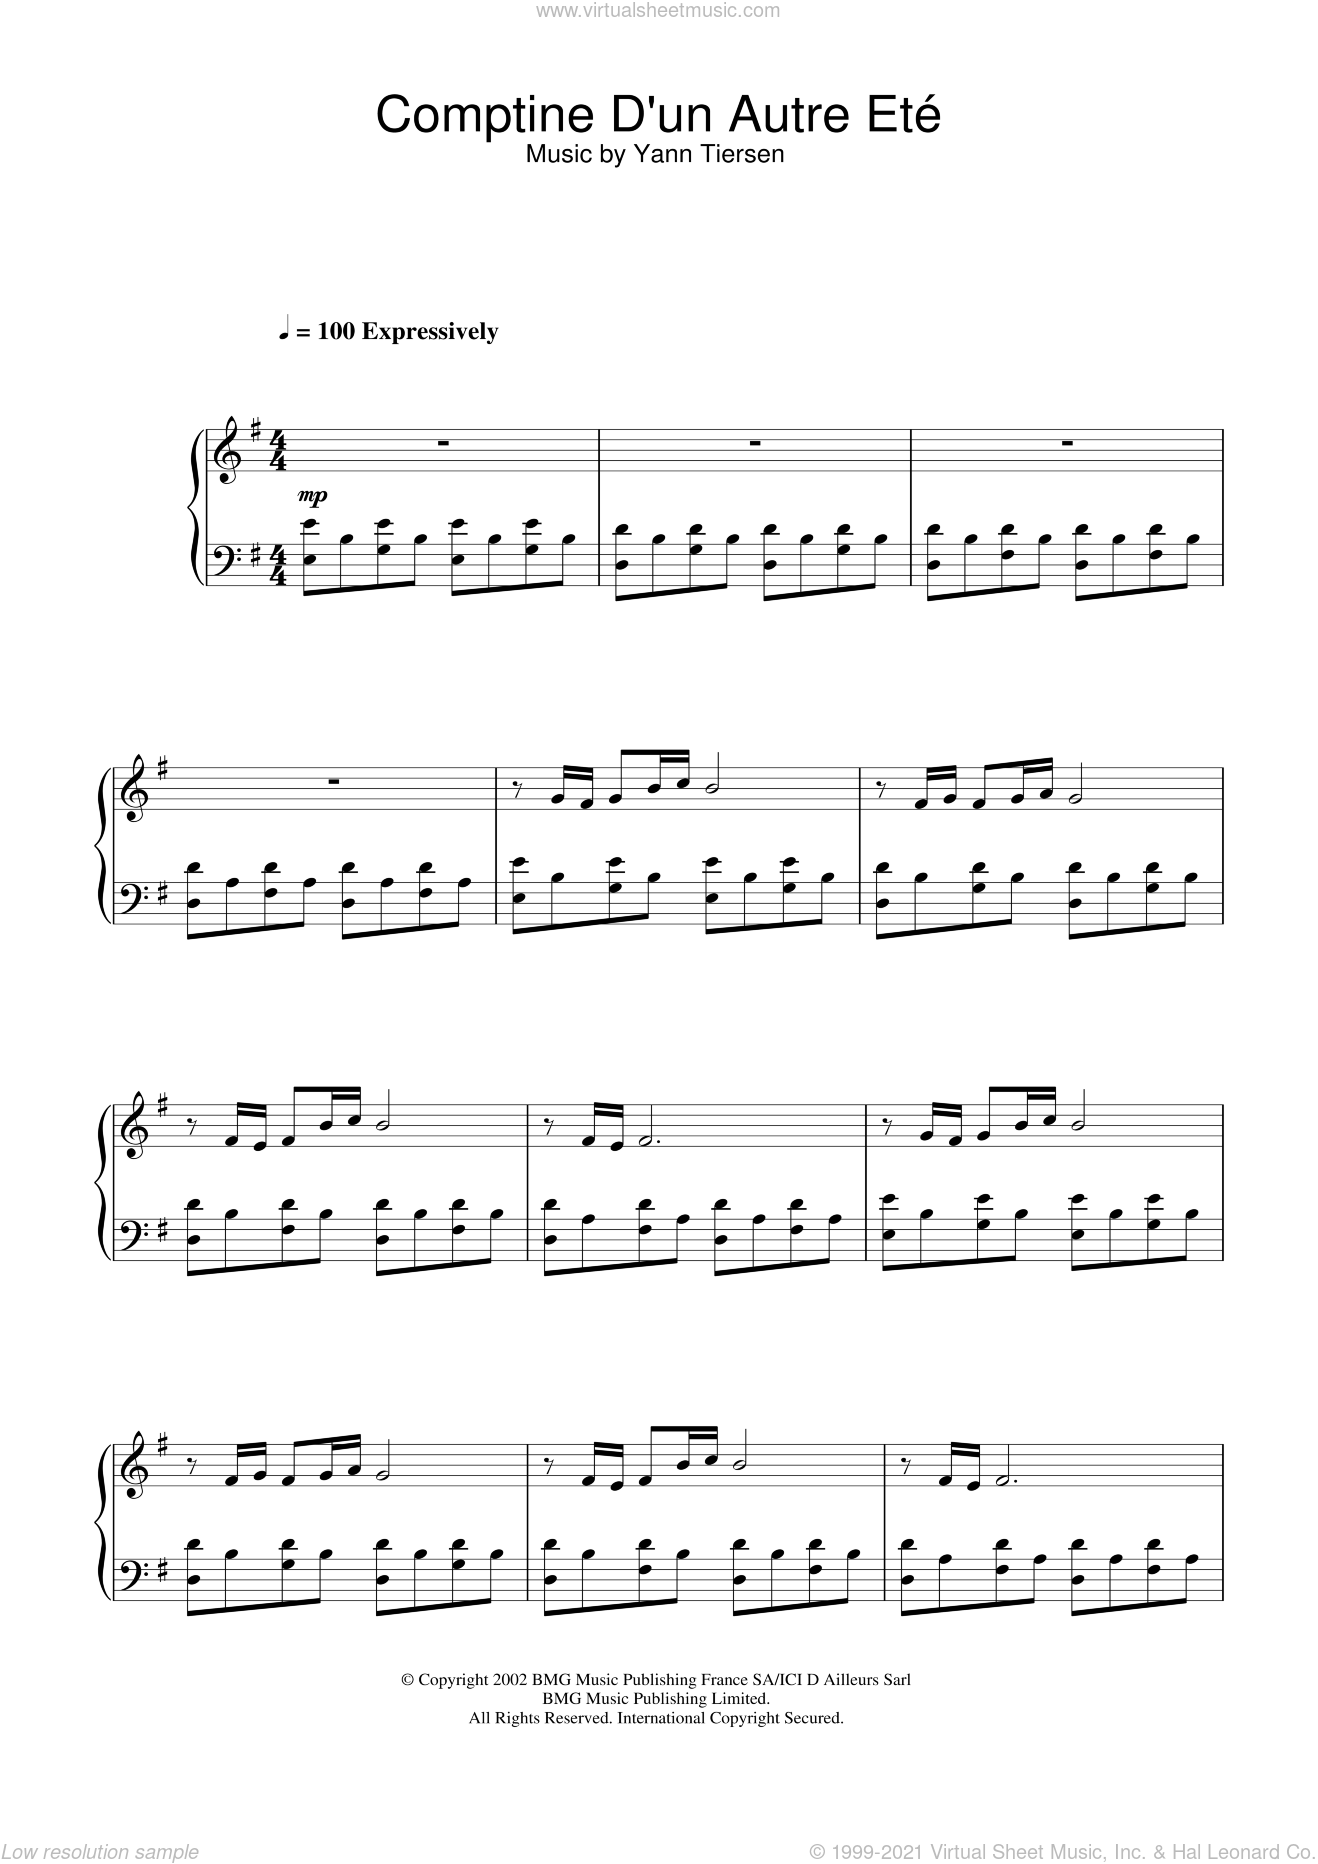 Comptine D'un Autre Ete (from Amelie) sheet music for piano solo by Yann Tiersen, intermediate skill level